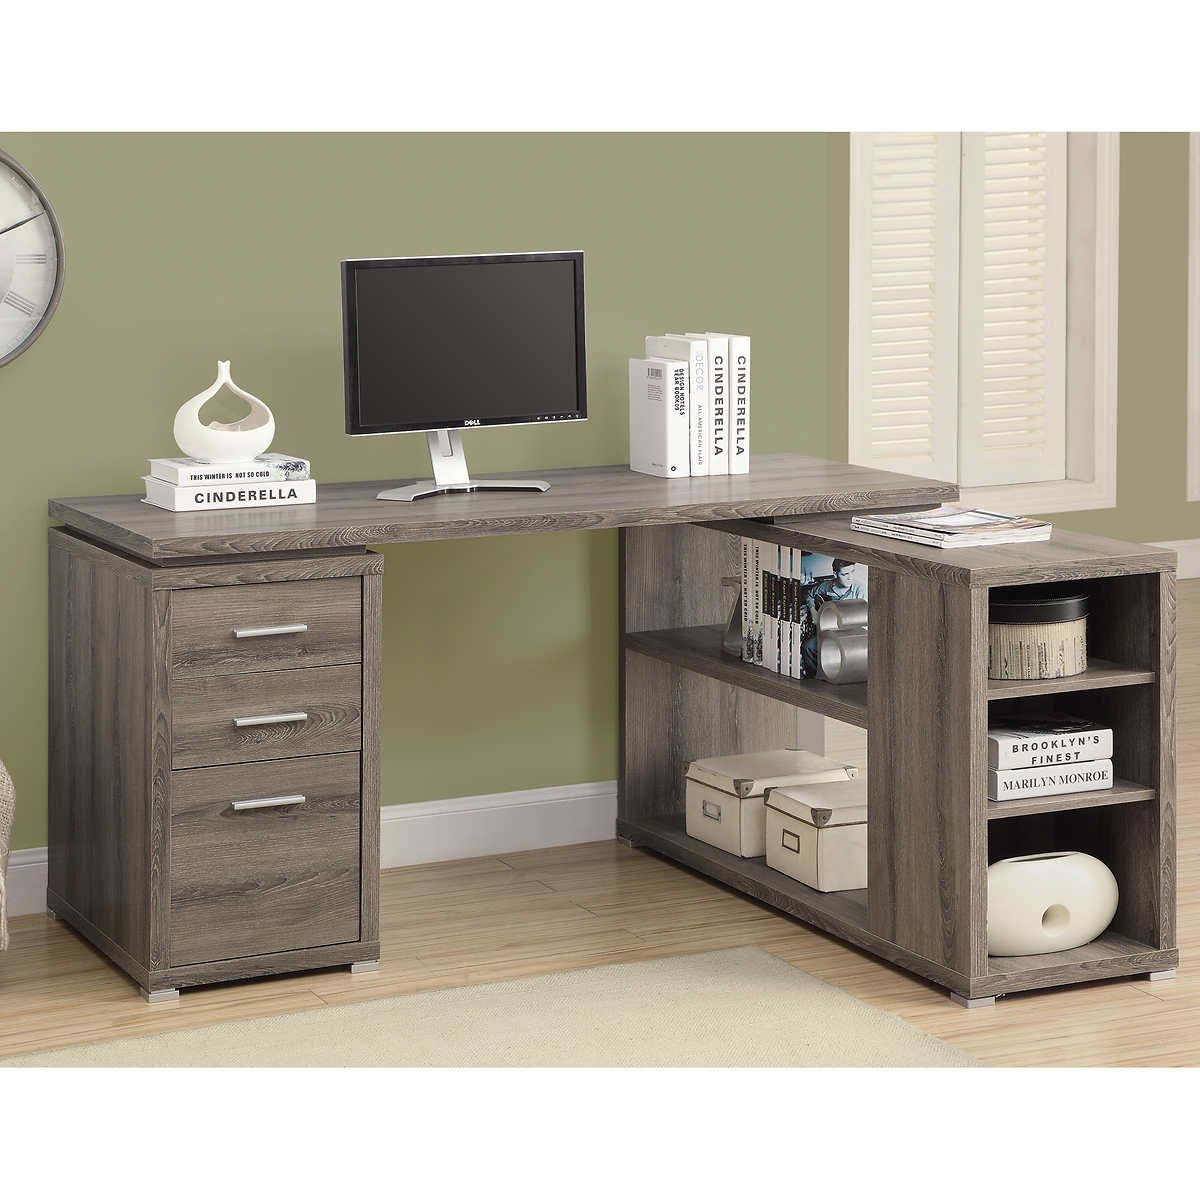 Grey Modern Left/Right Facing Corner Desk Workstation | Perfect Contemporary Home Office or College Student Dorm Room Storage Table for Your Computer, PC, Laptop, Monitor, Books, Papers and Supplies